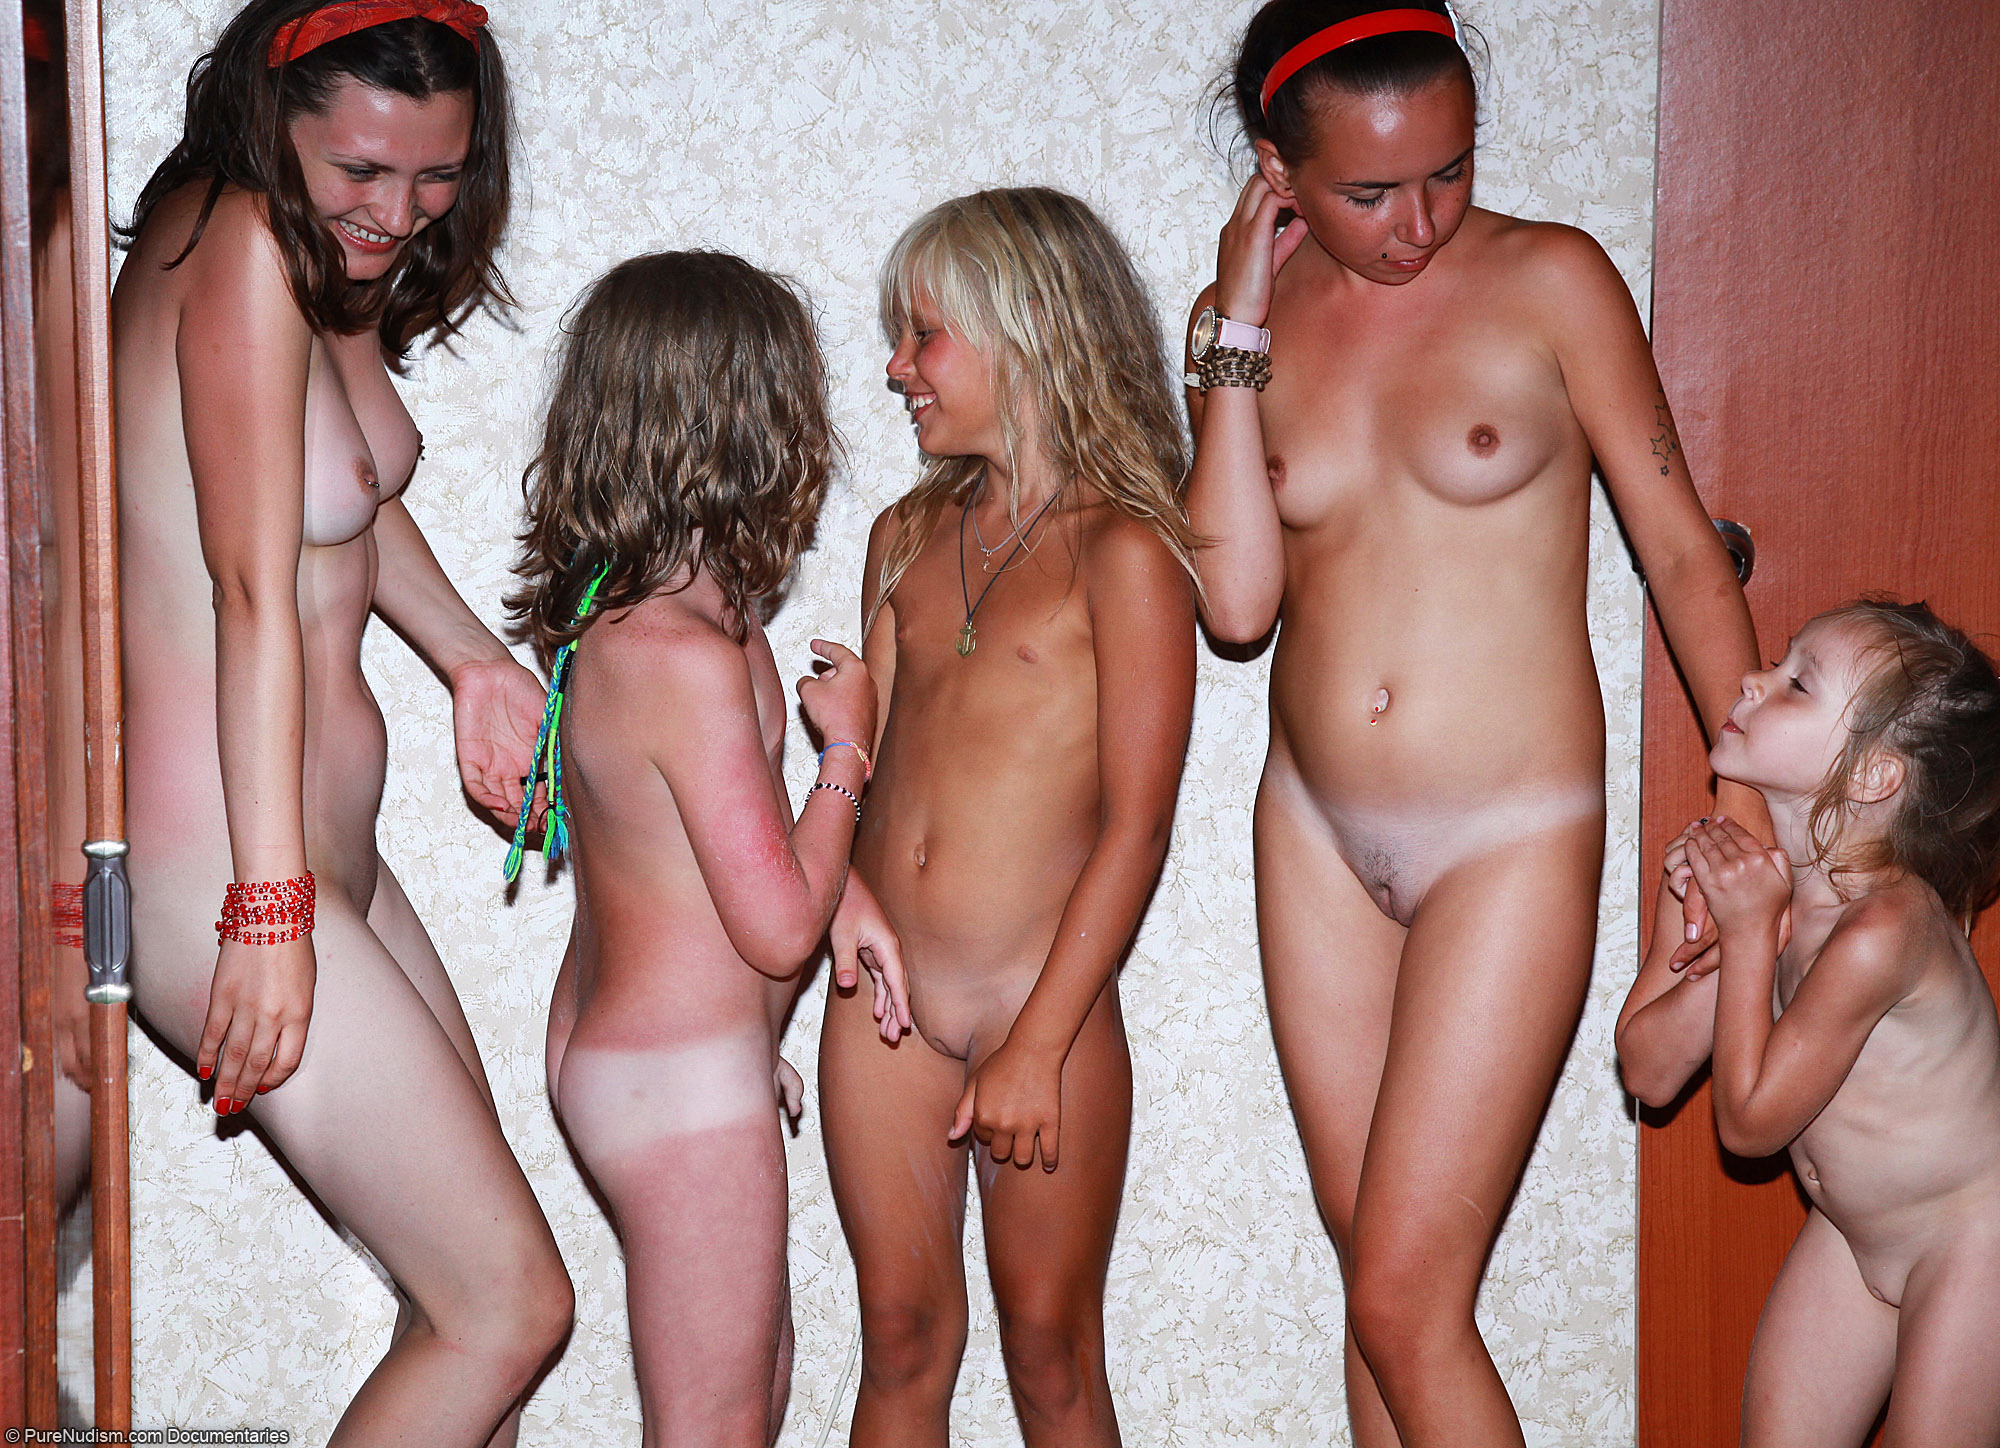 nudist fam COM - Nudist Family Hangs Out in the Bedroom Picture